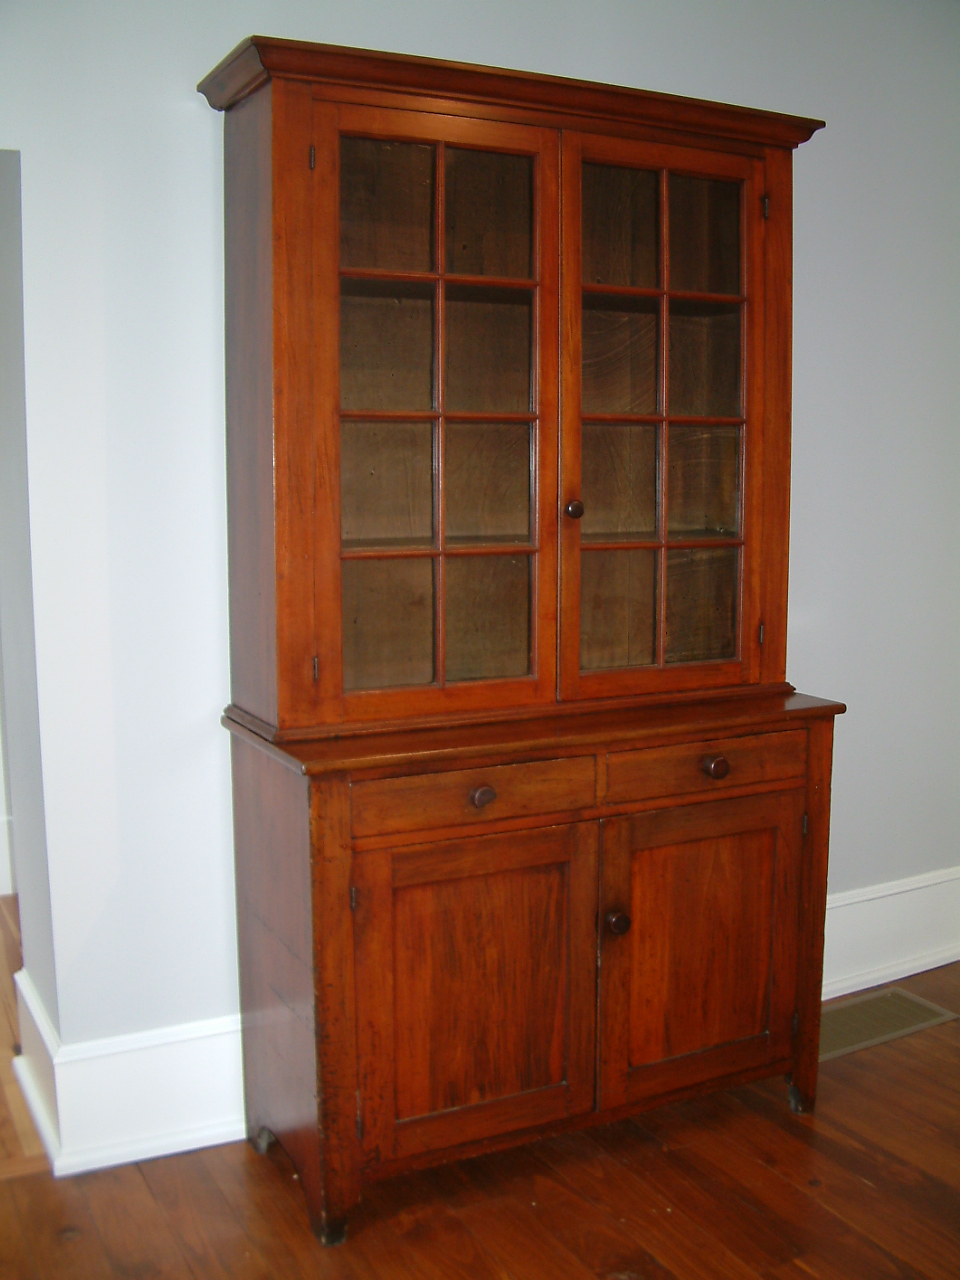 467 - 2 piece, 16 light (2 x 8) Cherry Stepback Cupboard attributed - Antique Furniture Bodenheimer-Mayer House